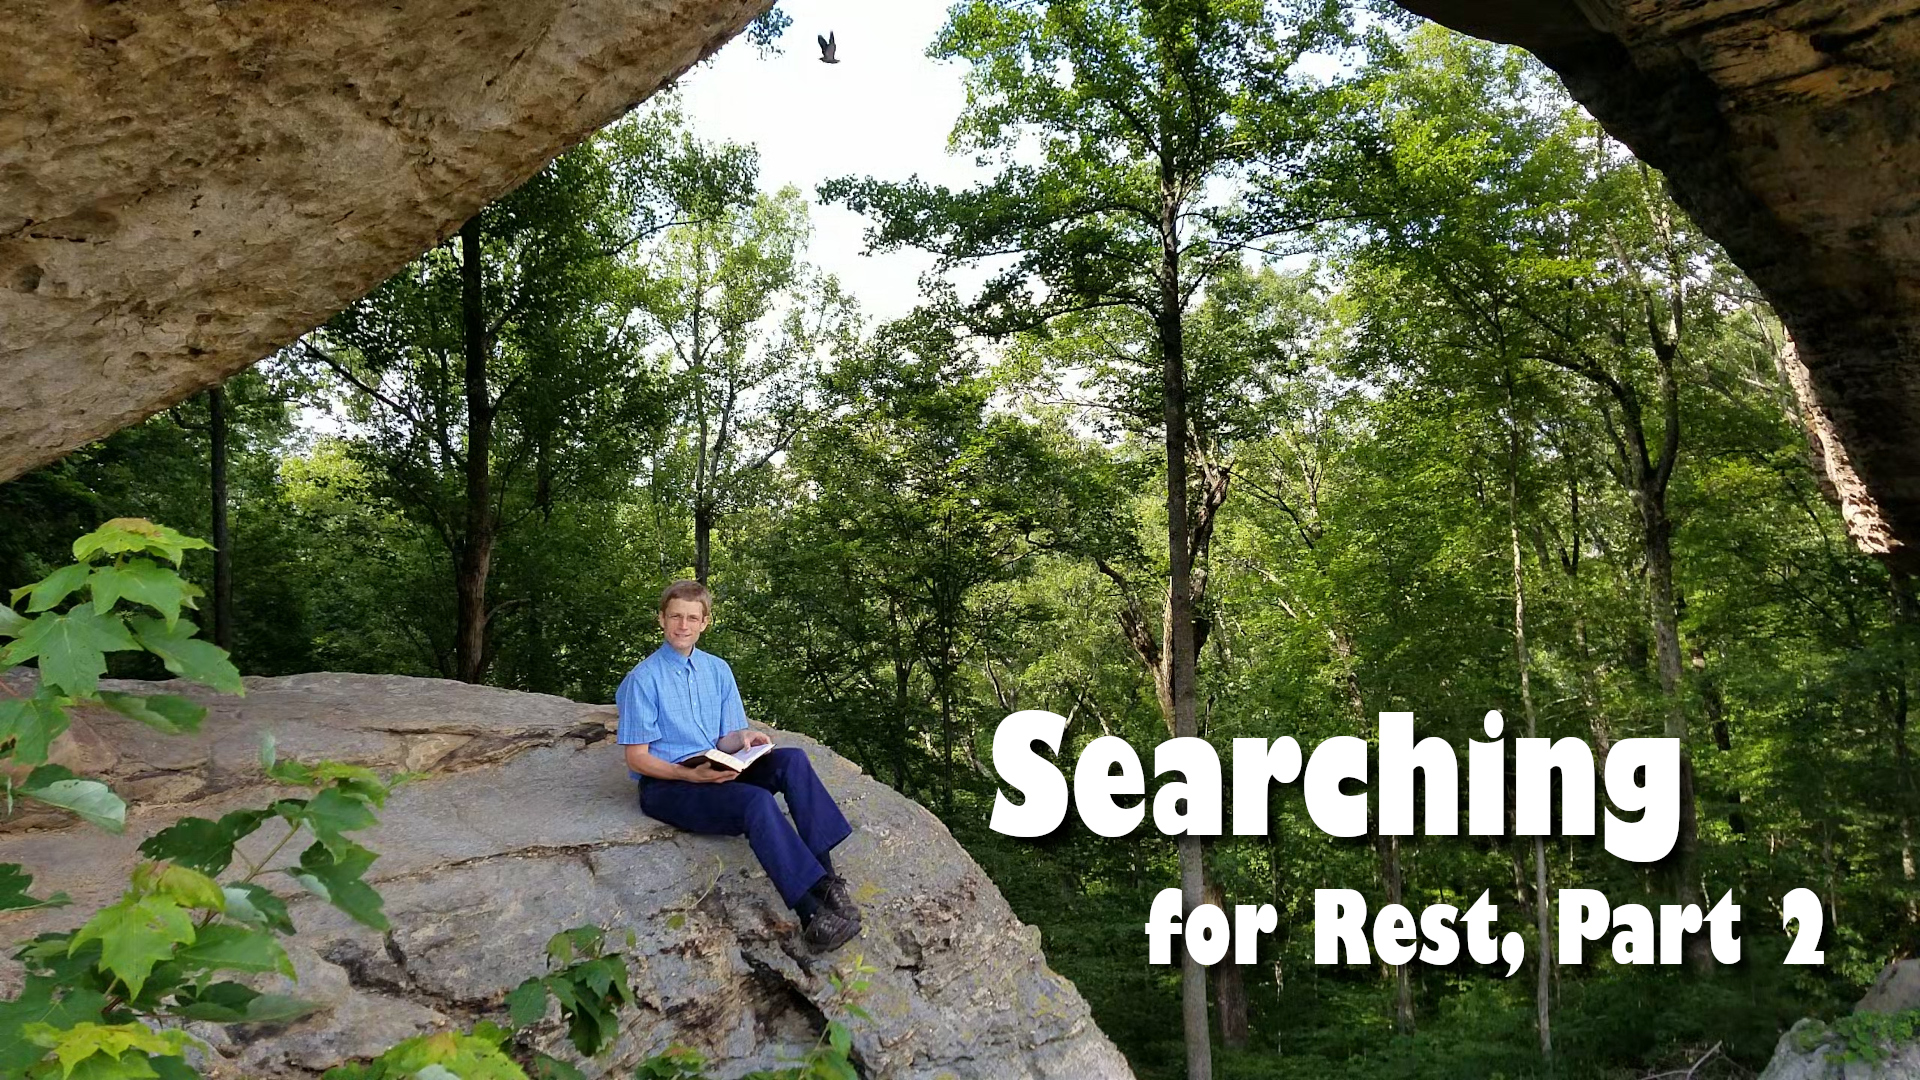 Searching for Rest, Part 2